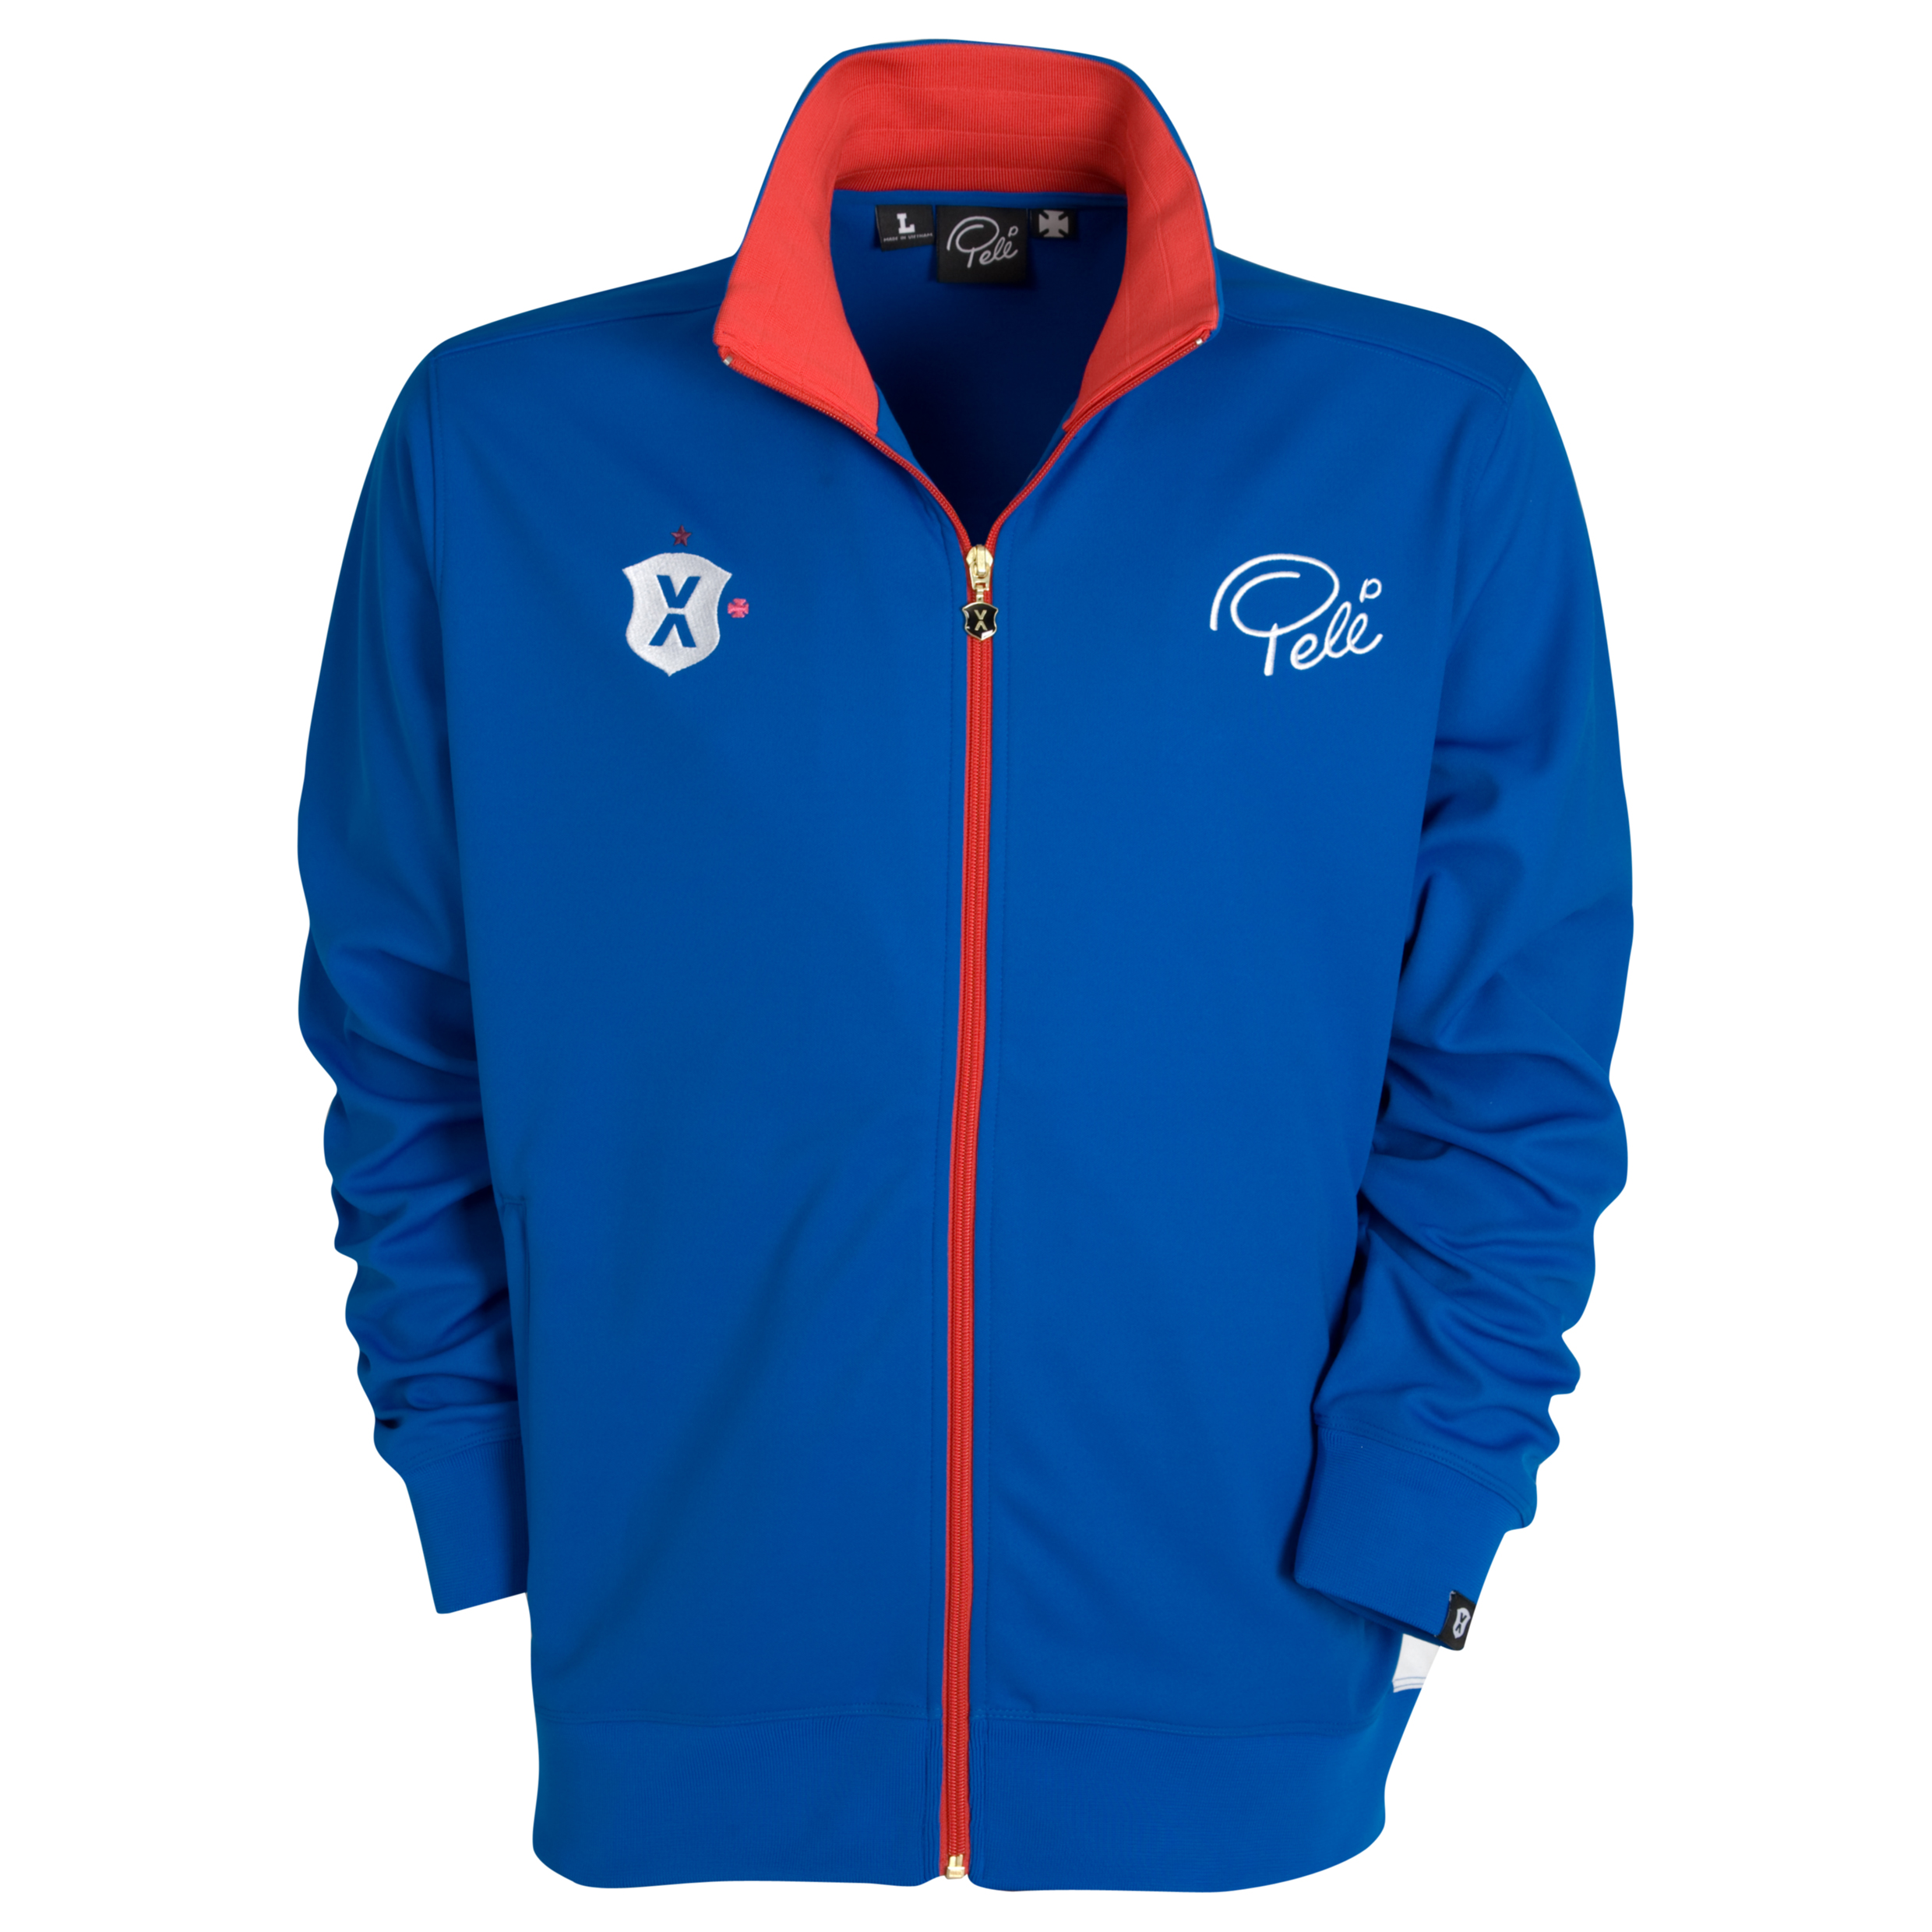 Pele Pele Sports Full Zip Track Top - Princess Blue